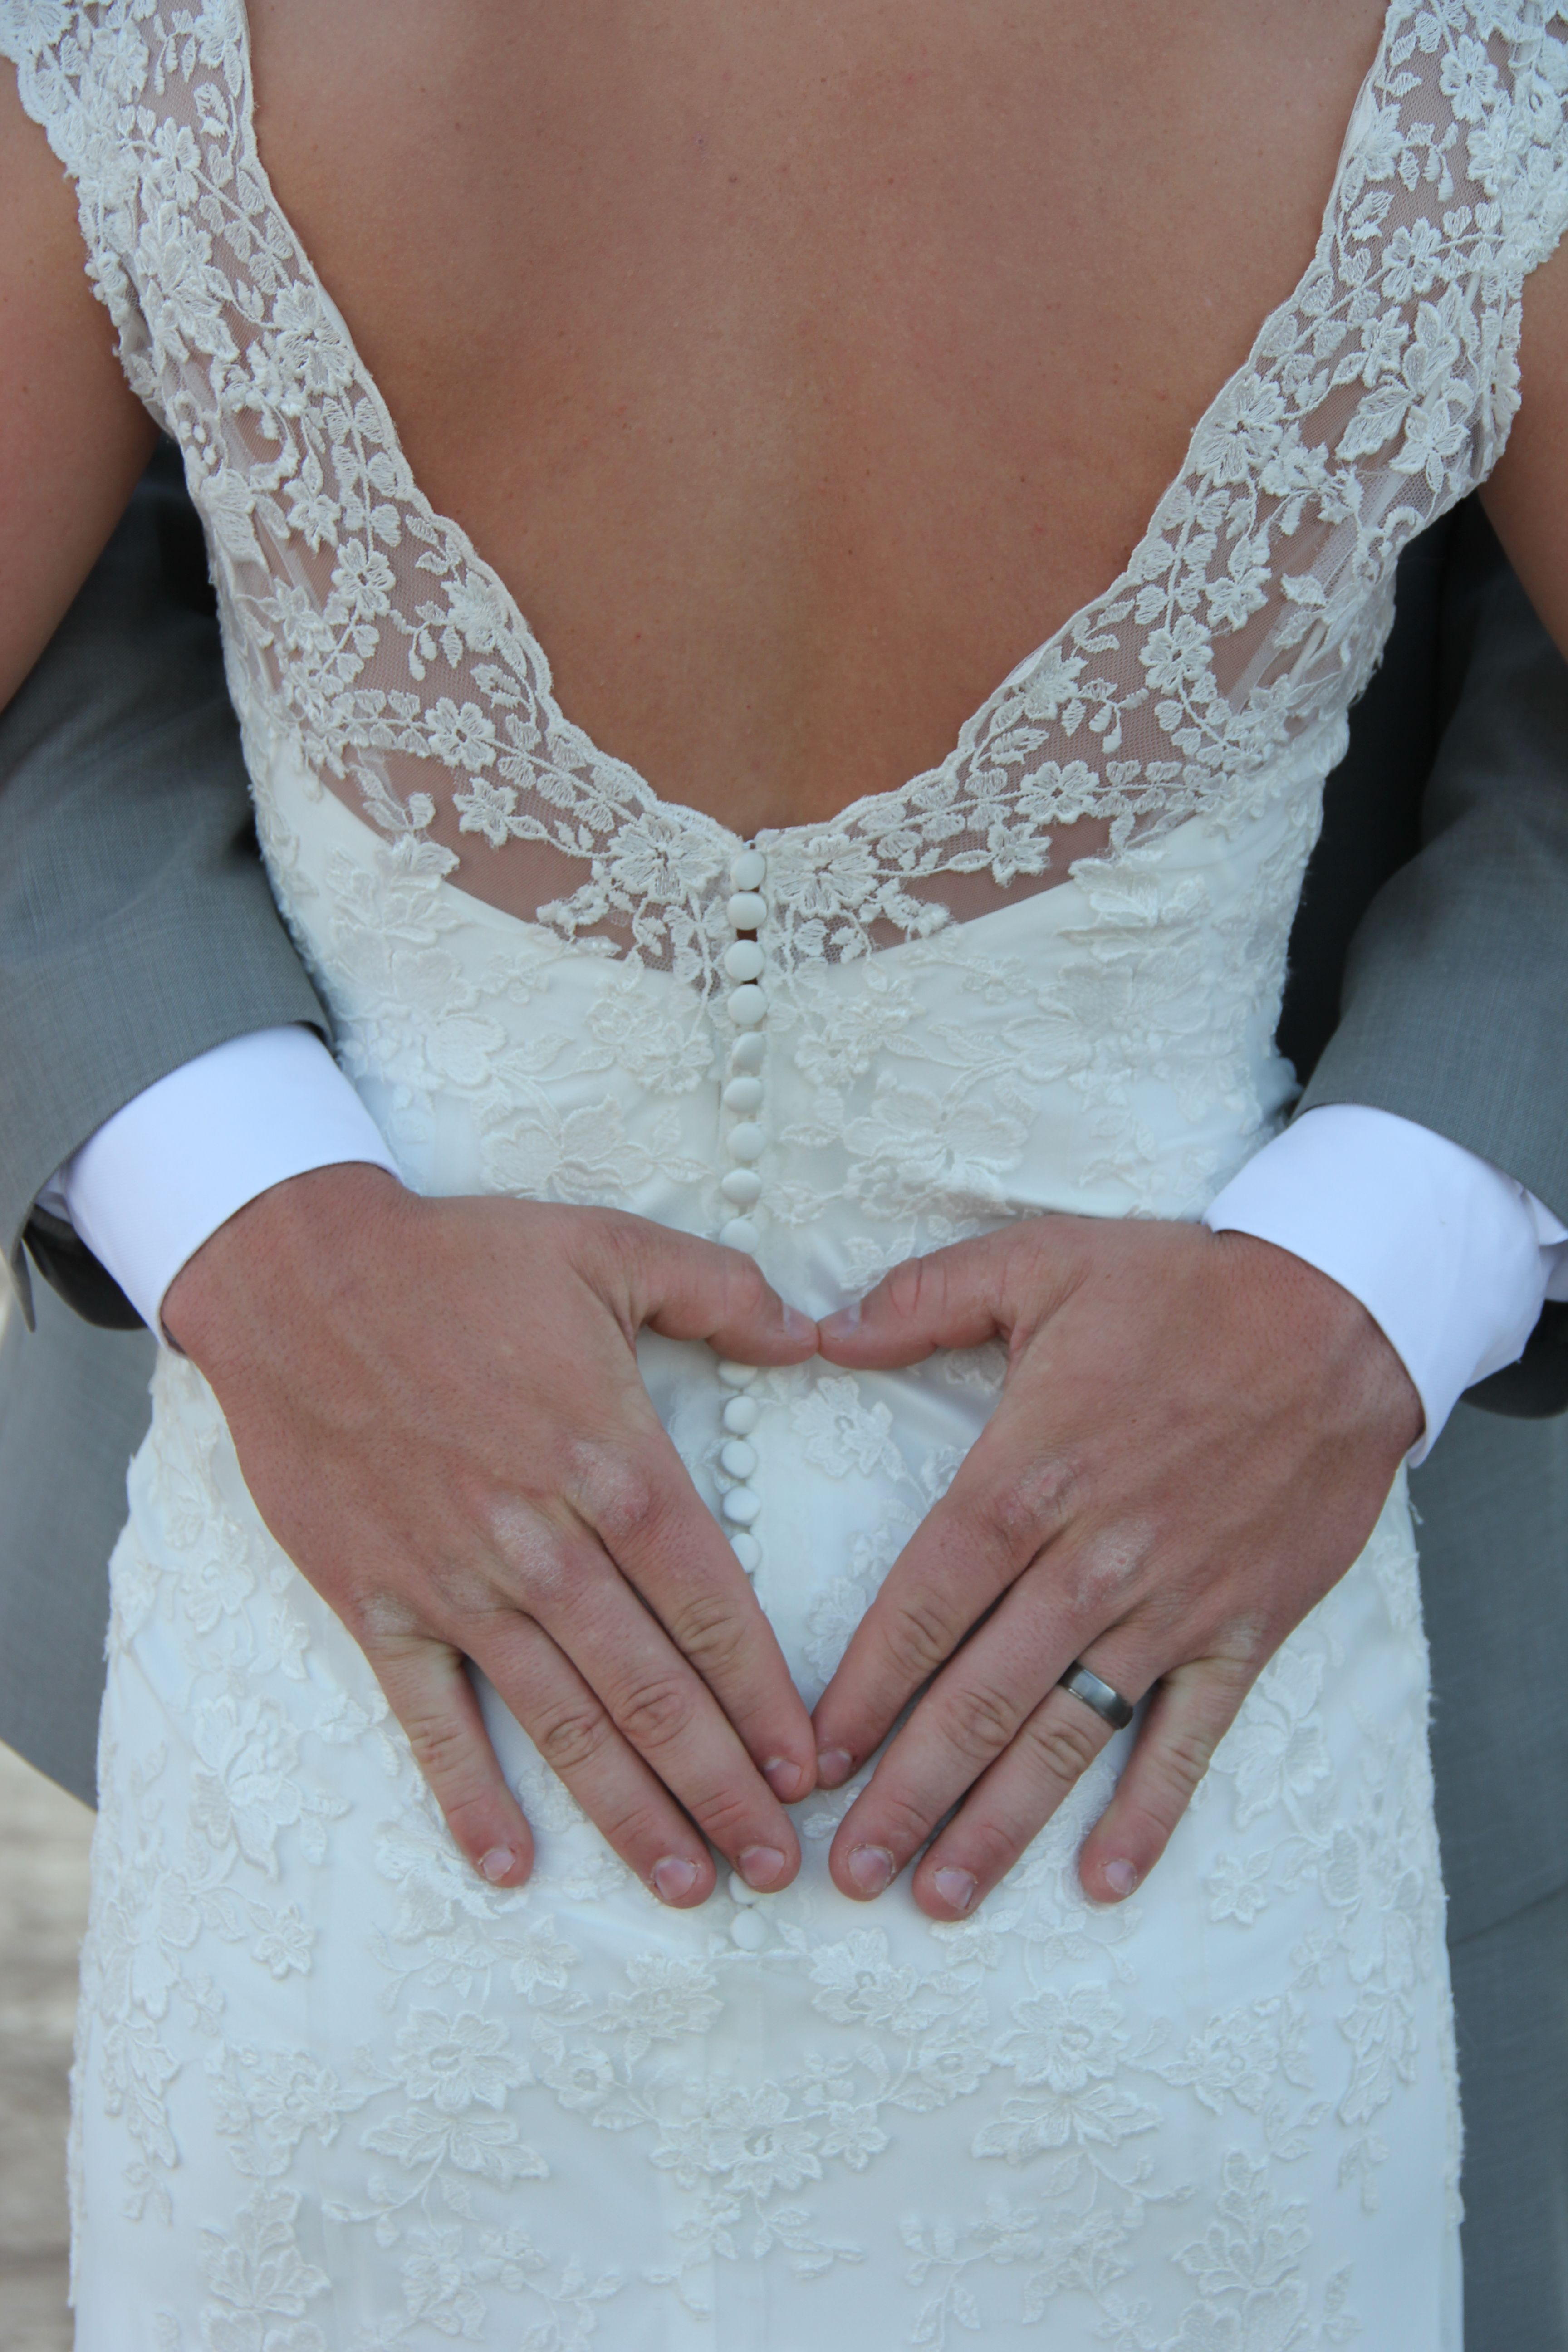 His hands show hard work not pampered Wedding dresses